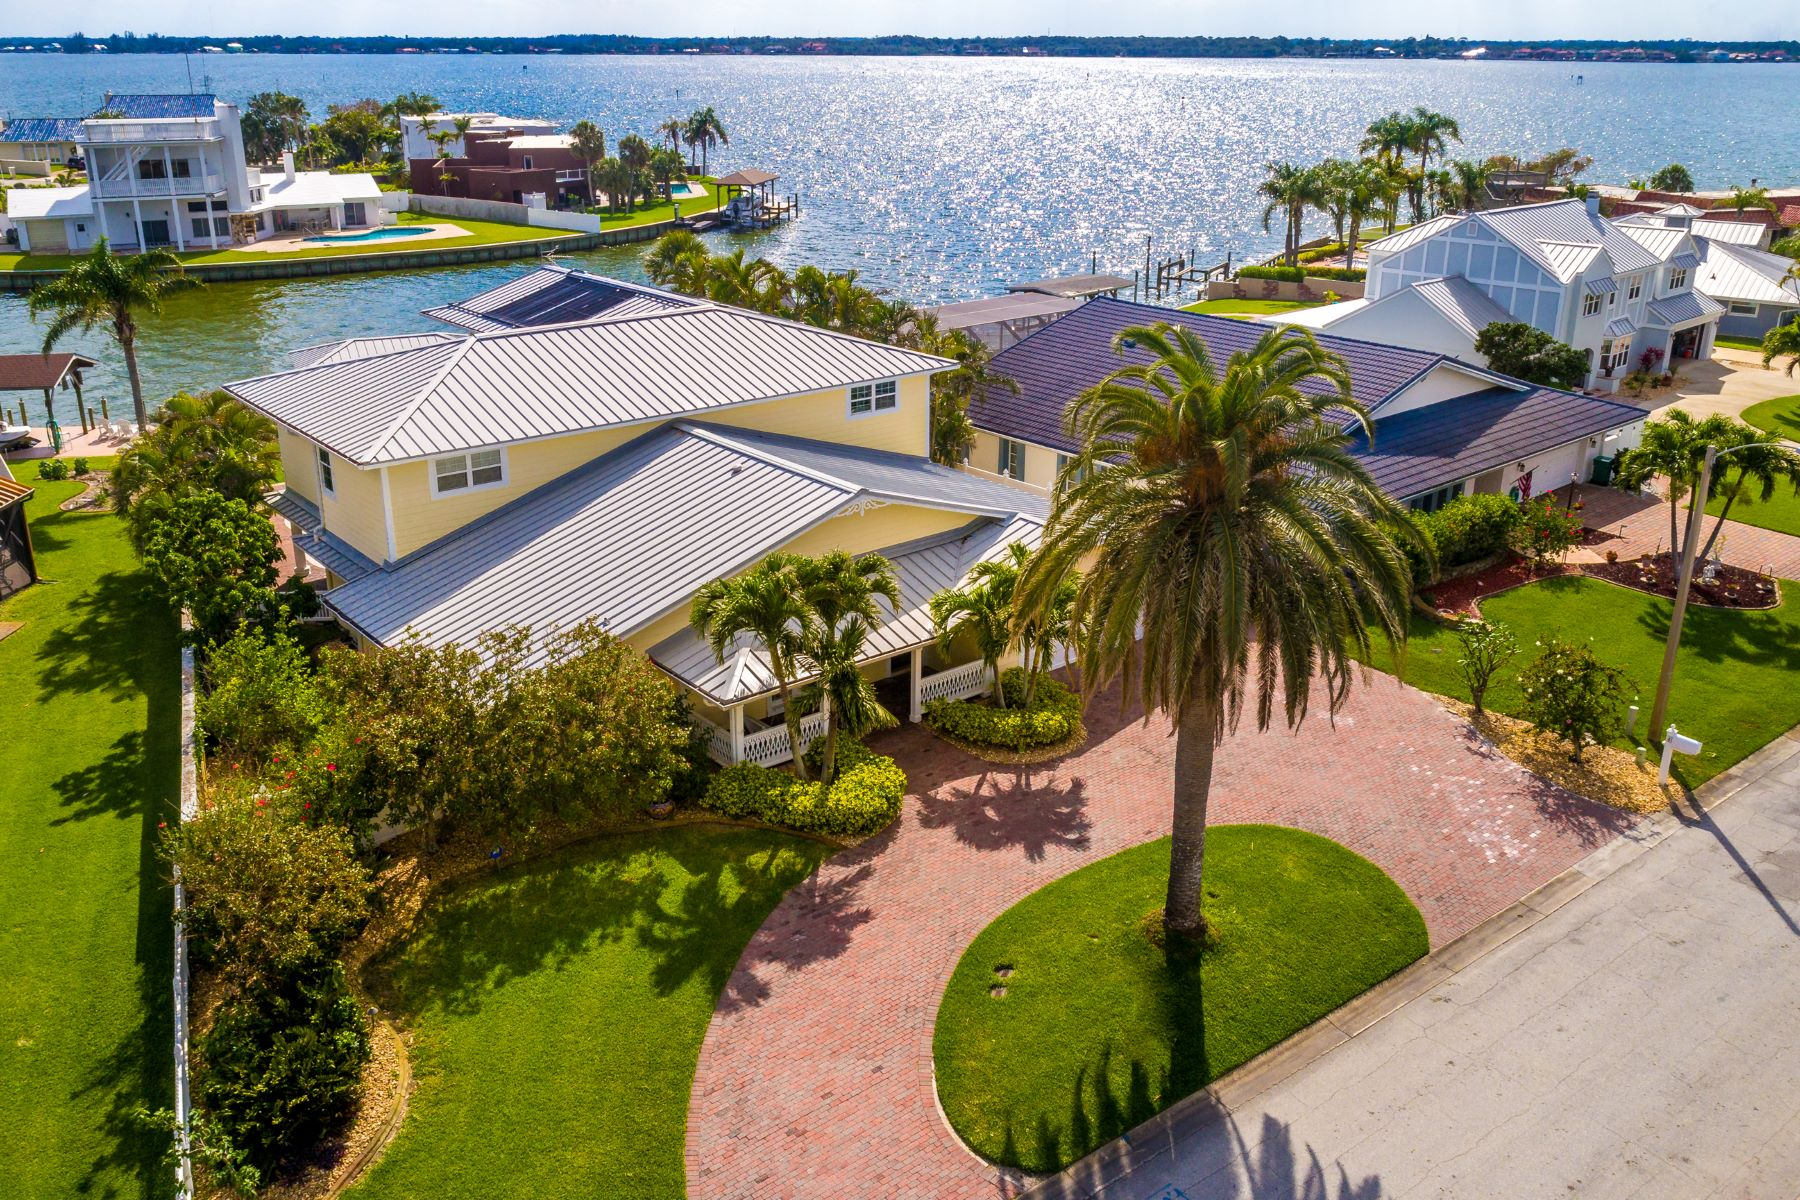 Spectacular Waterfront Home 4 Willow Green Dr. Cocoa Beach, Florida 32931 Stati Uniti